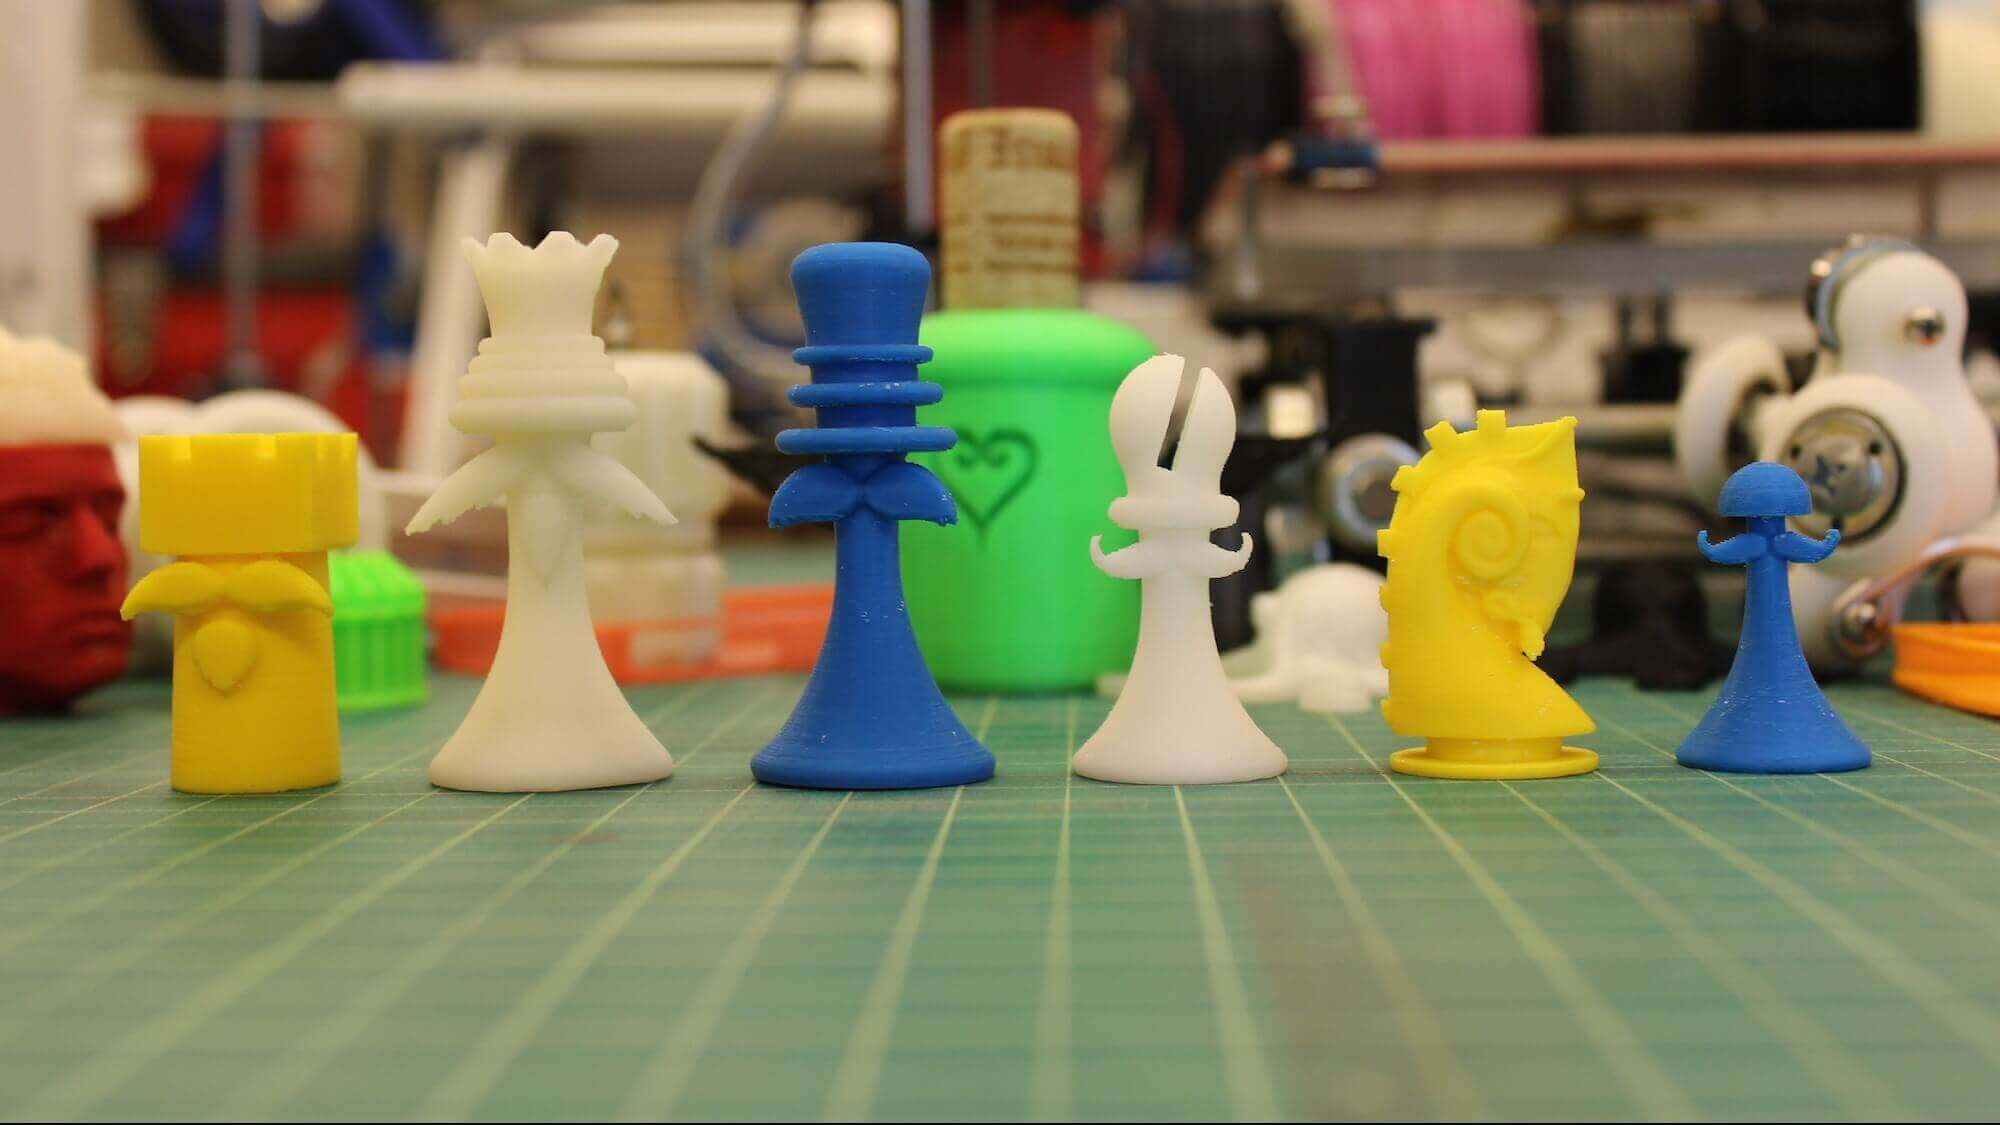 Chess With Mustaches a Hilarious Response to Legal Quagmire | All3DP